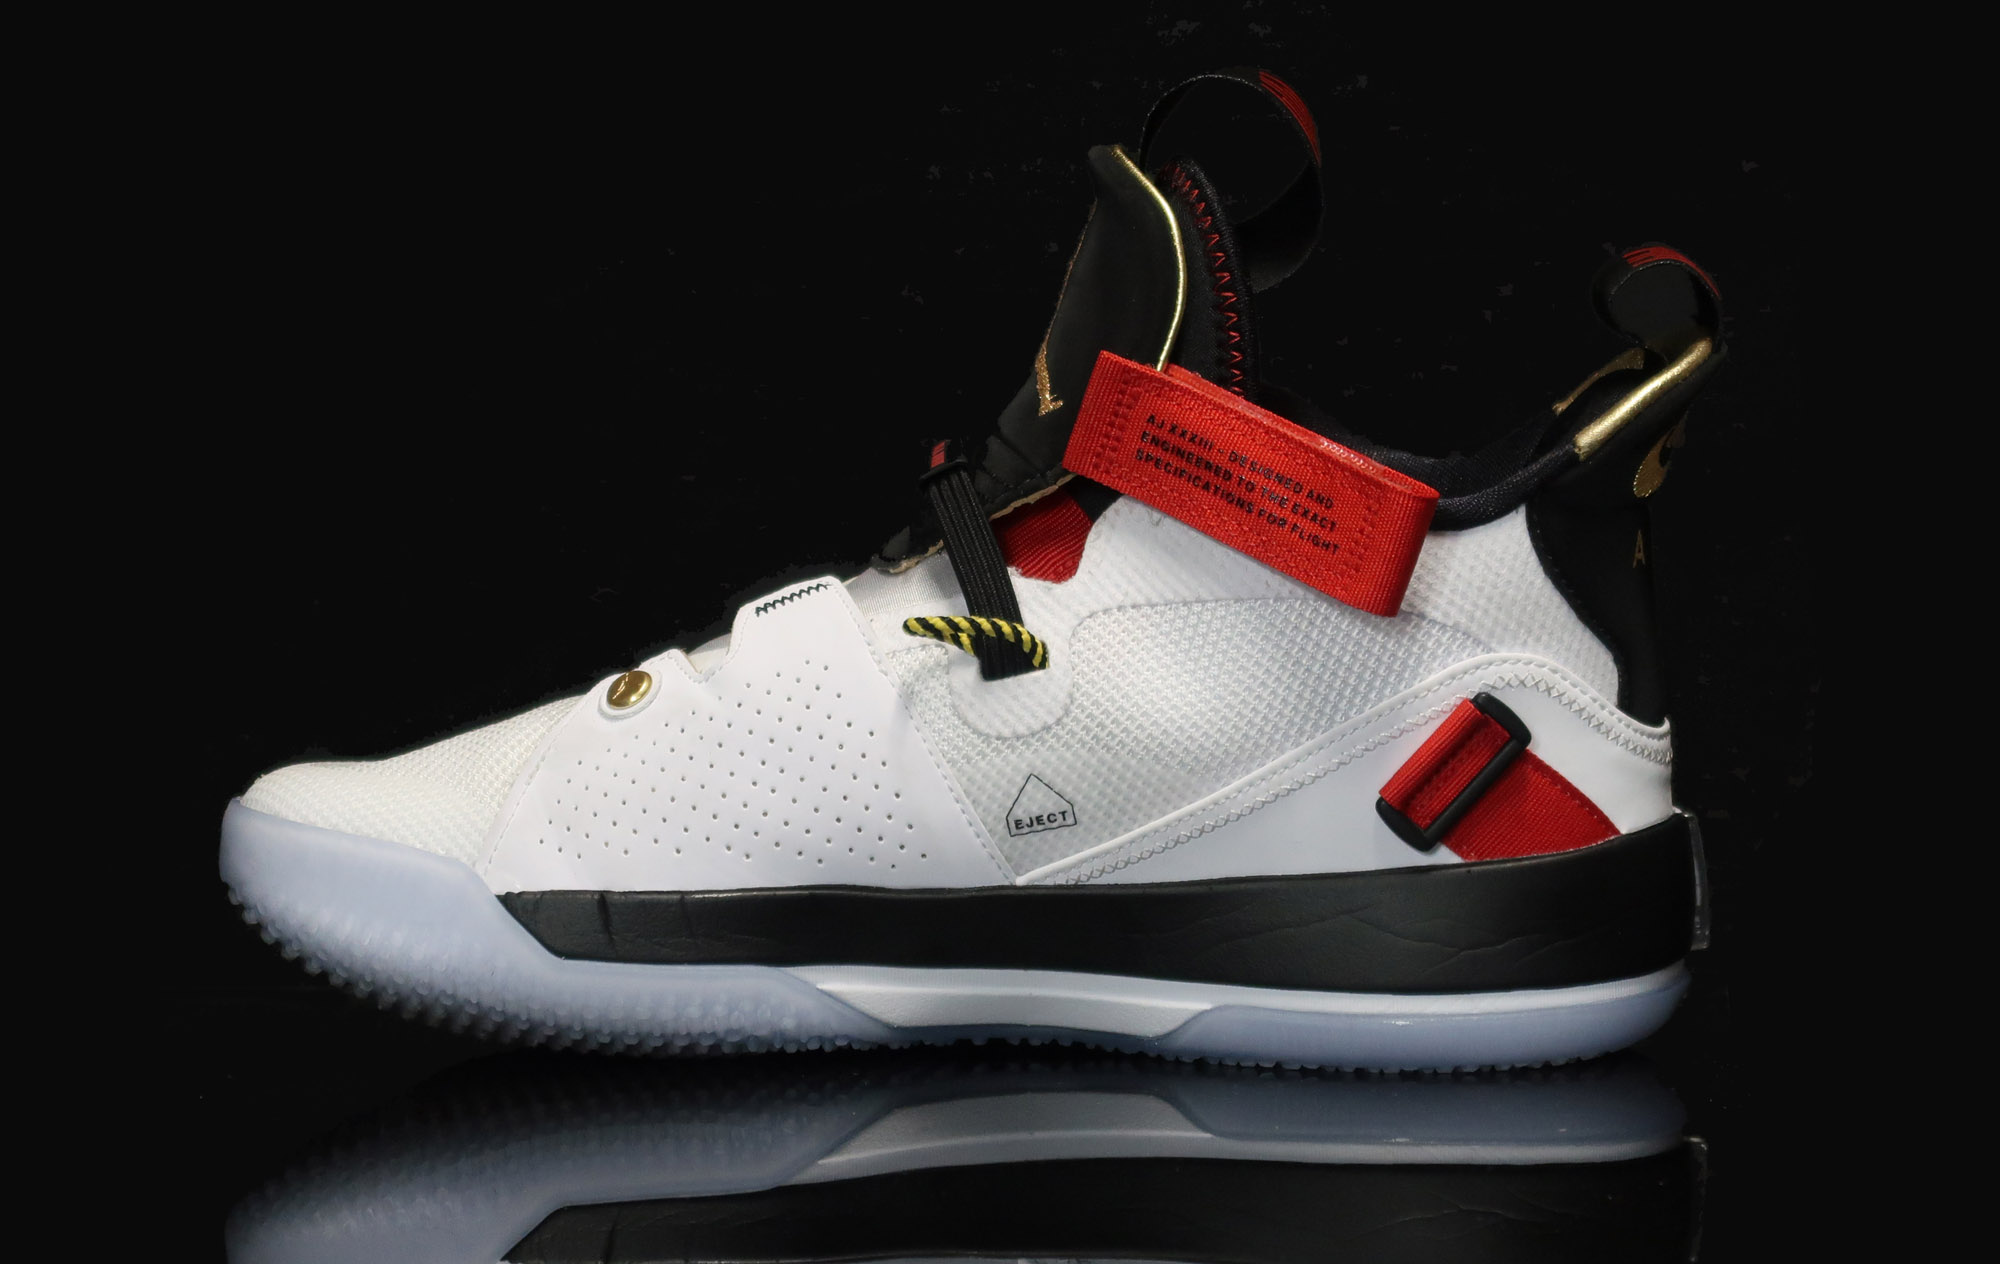 c5c84ecb99c451 ... purchase the latest jordan brand game shoe the air jordan 33 has been  an interesting sneaker